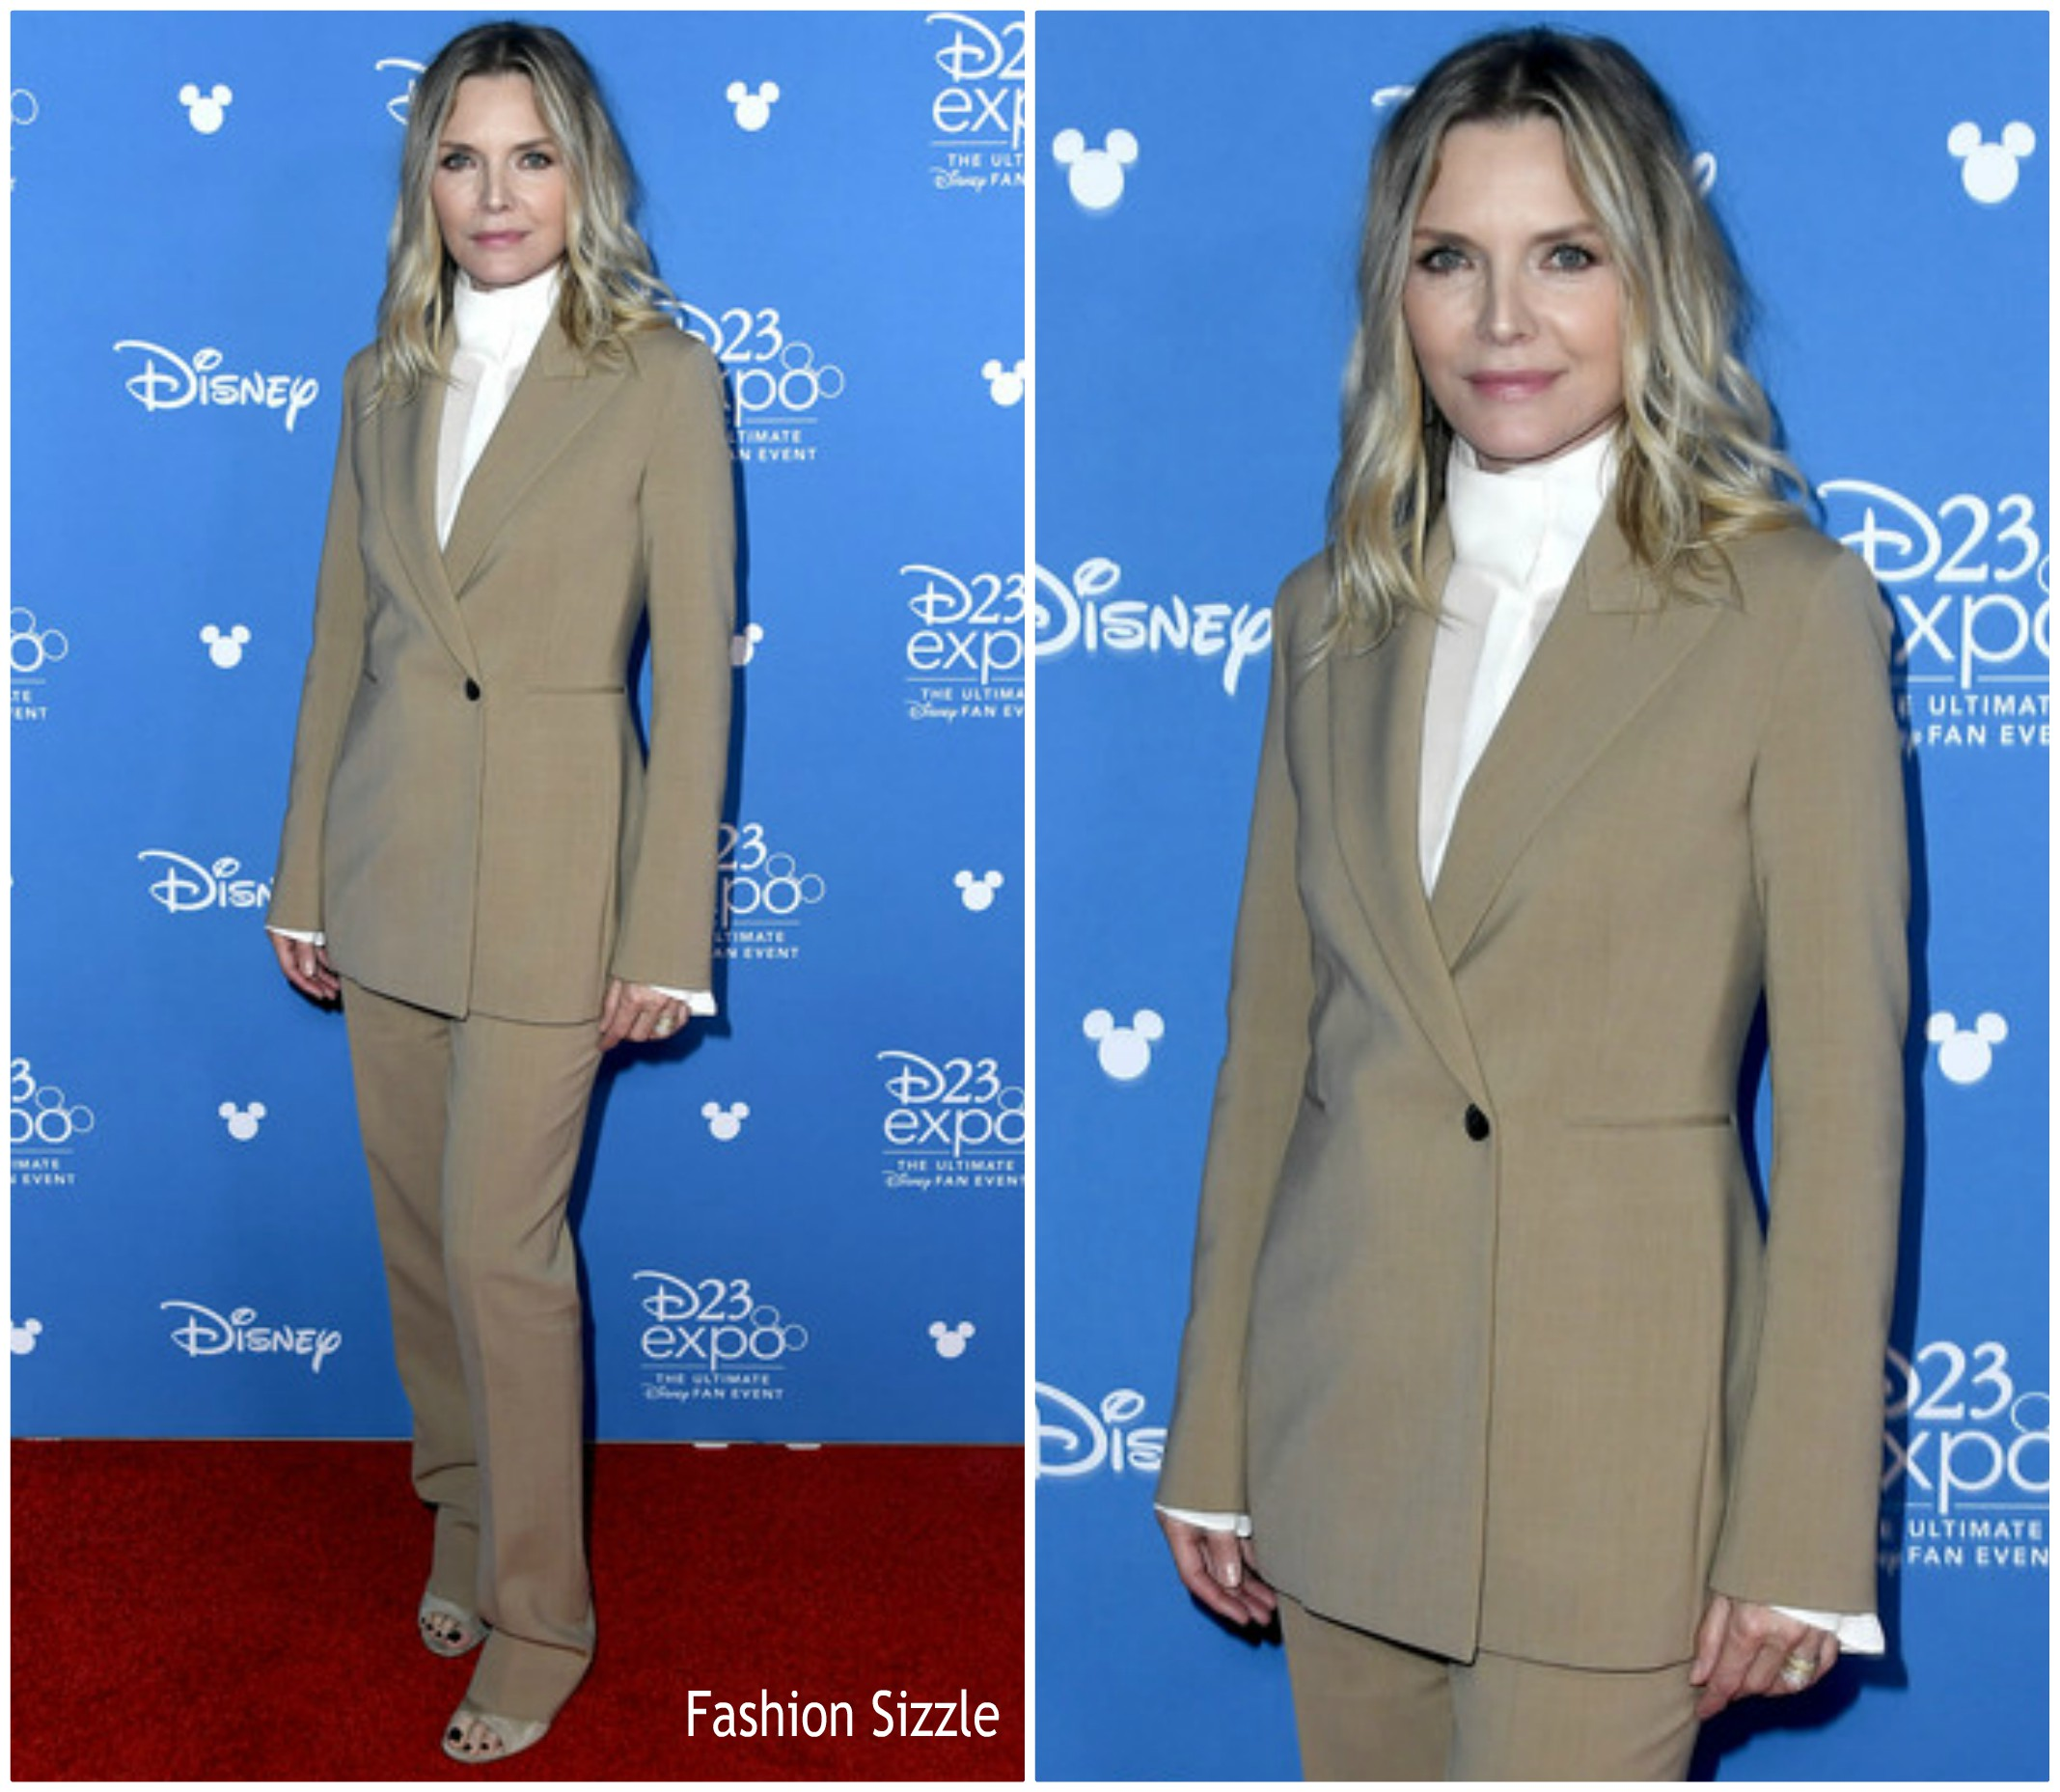 michelle-pfeiffer-in-the-row-d23-disney-event-in-anaheim-la